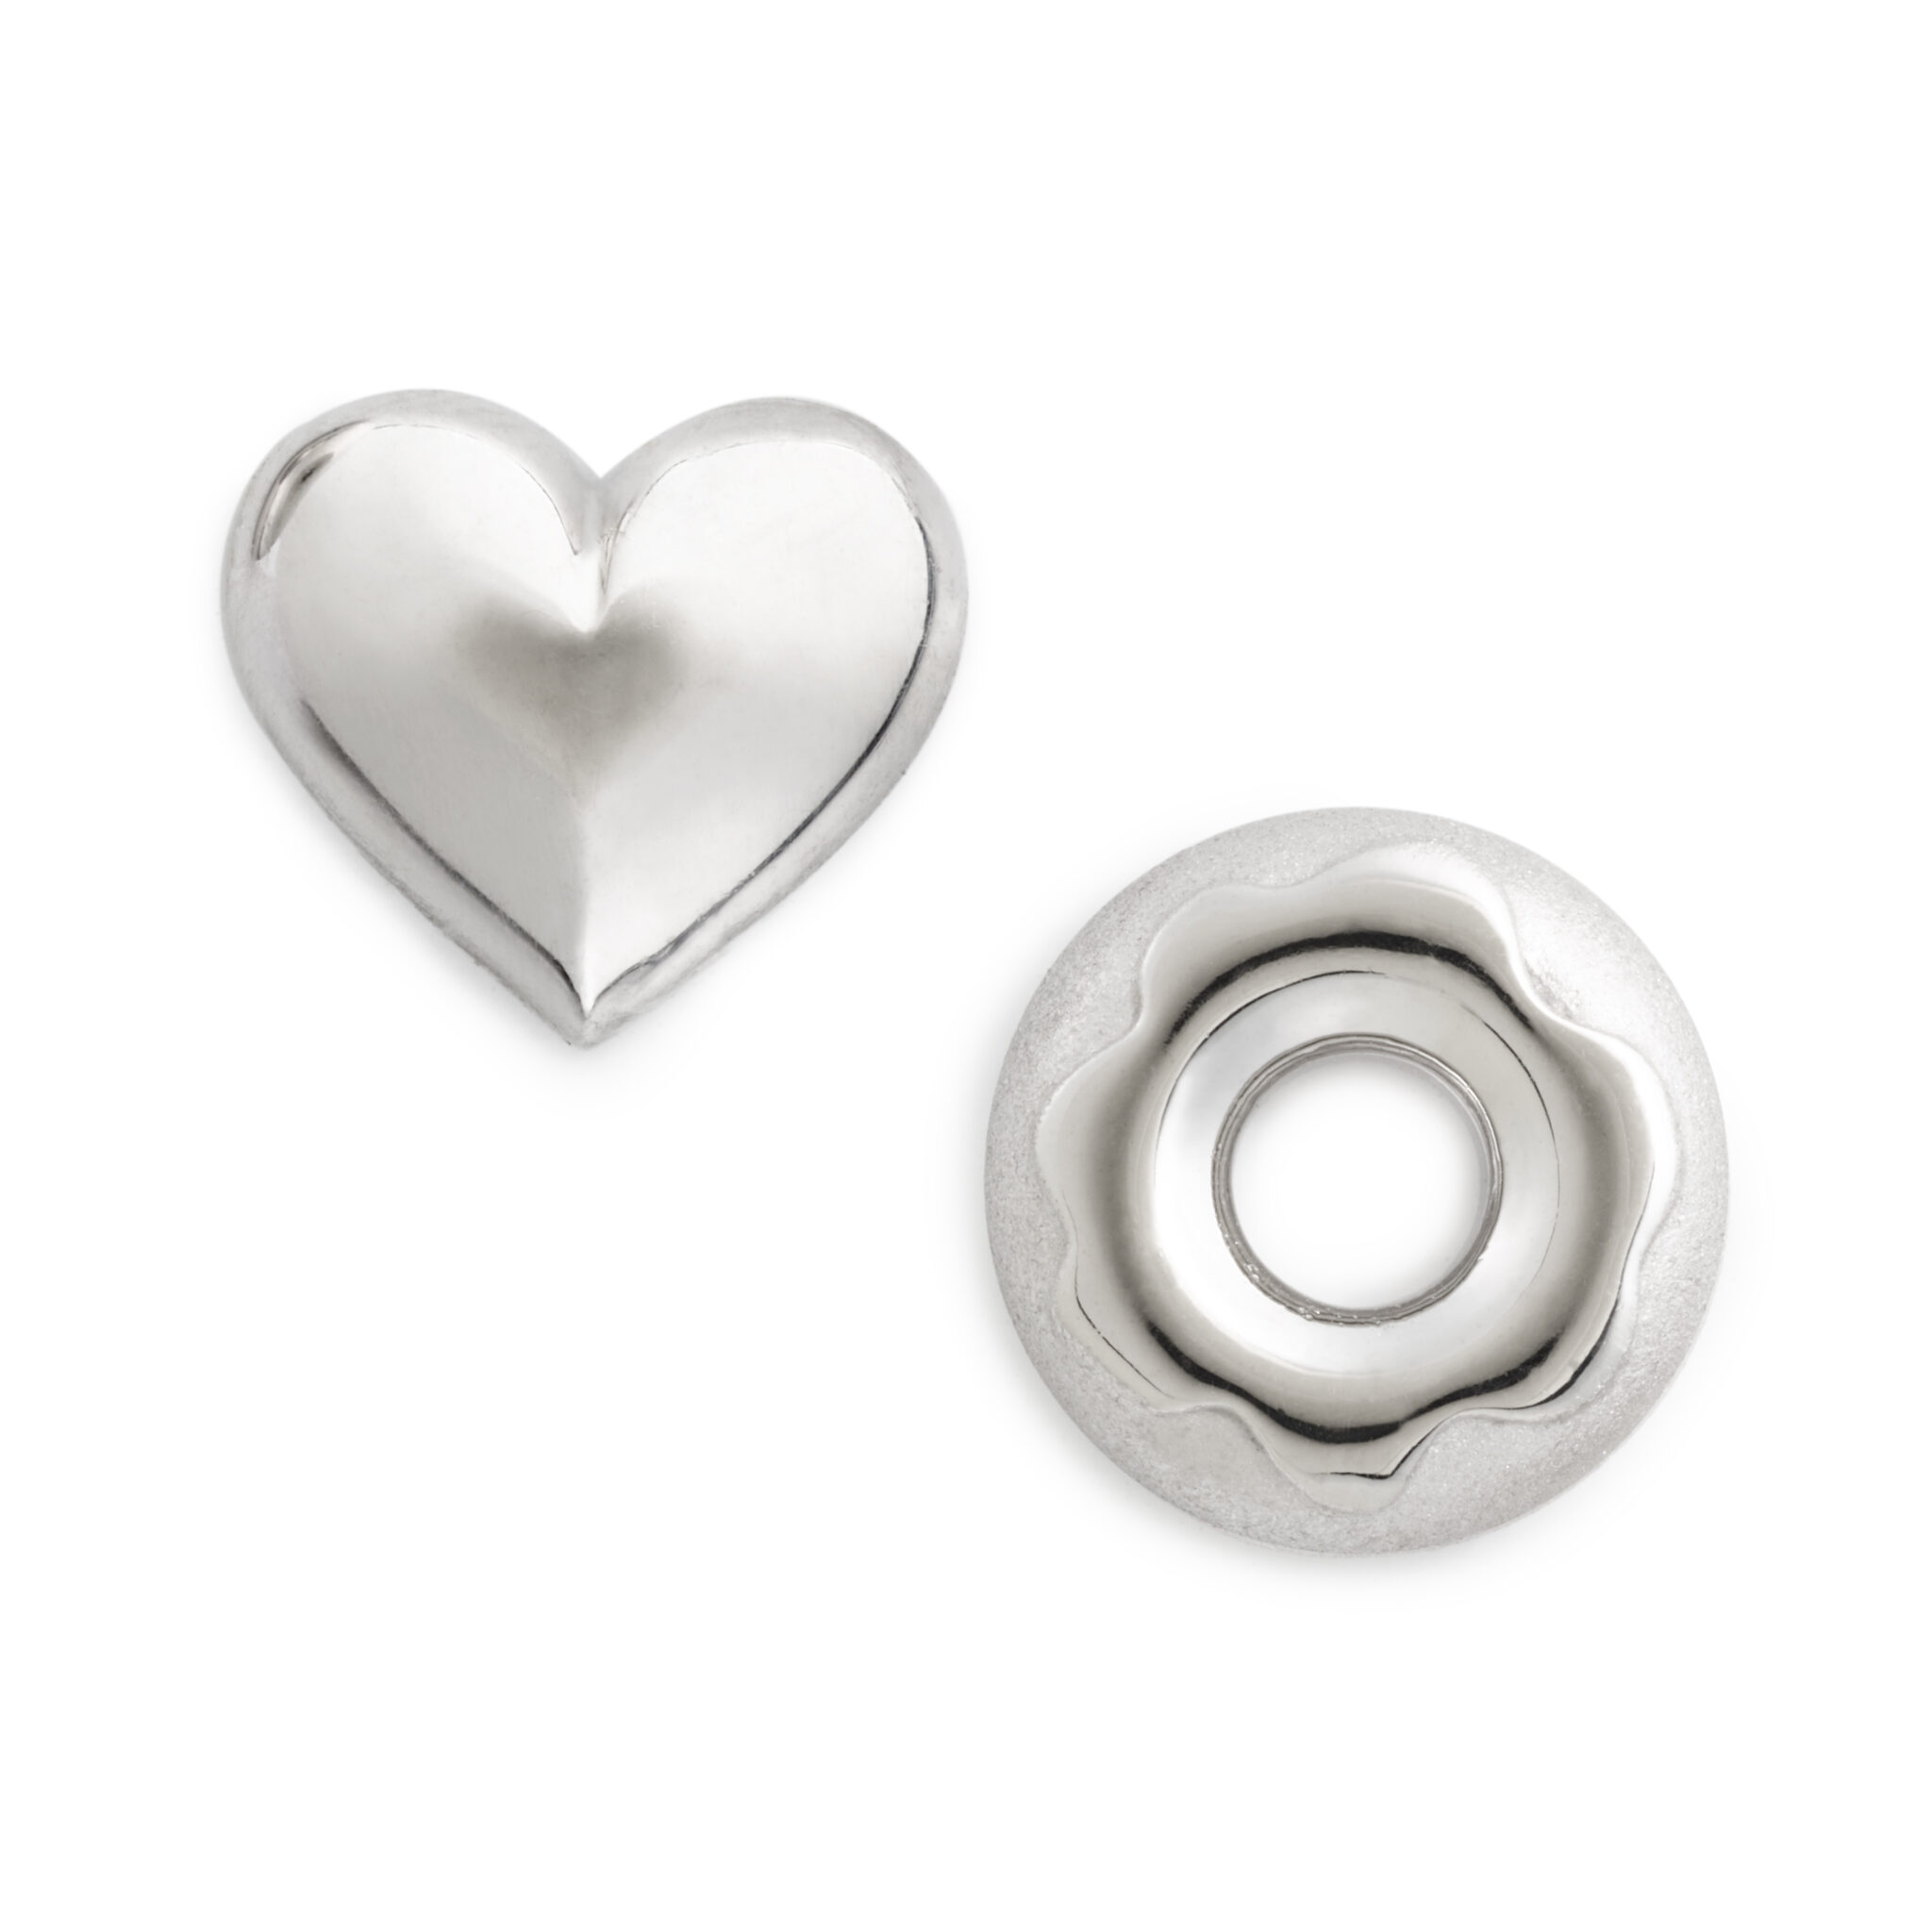 I Love Glaze Earring Set (mismatched pair), Sterling Silver